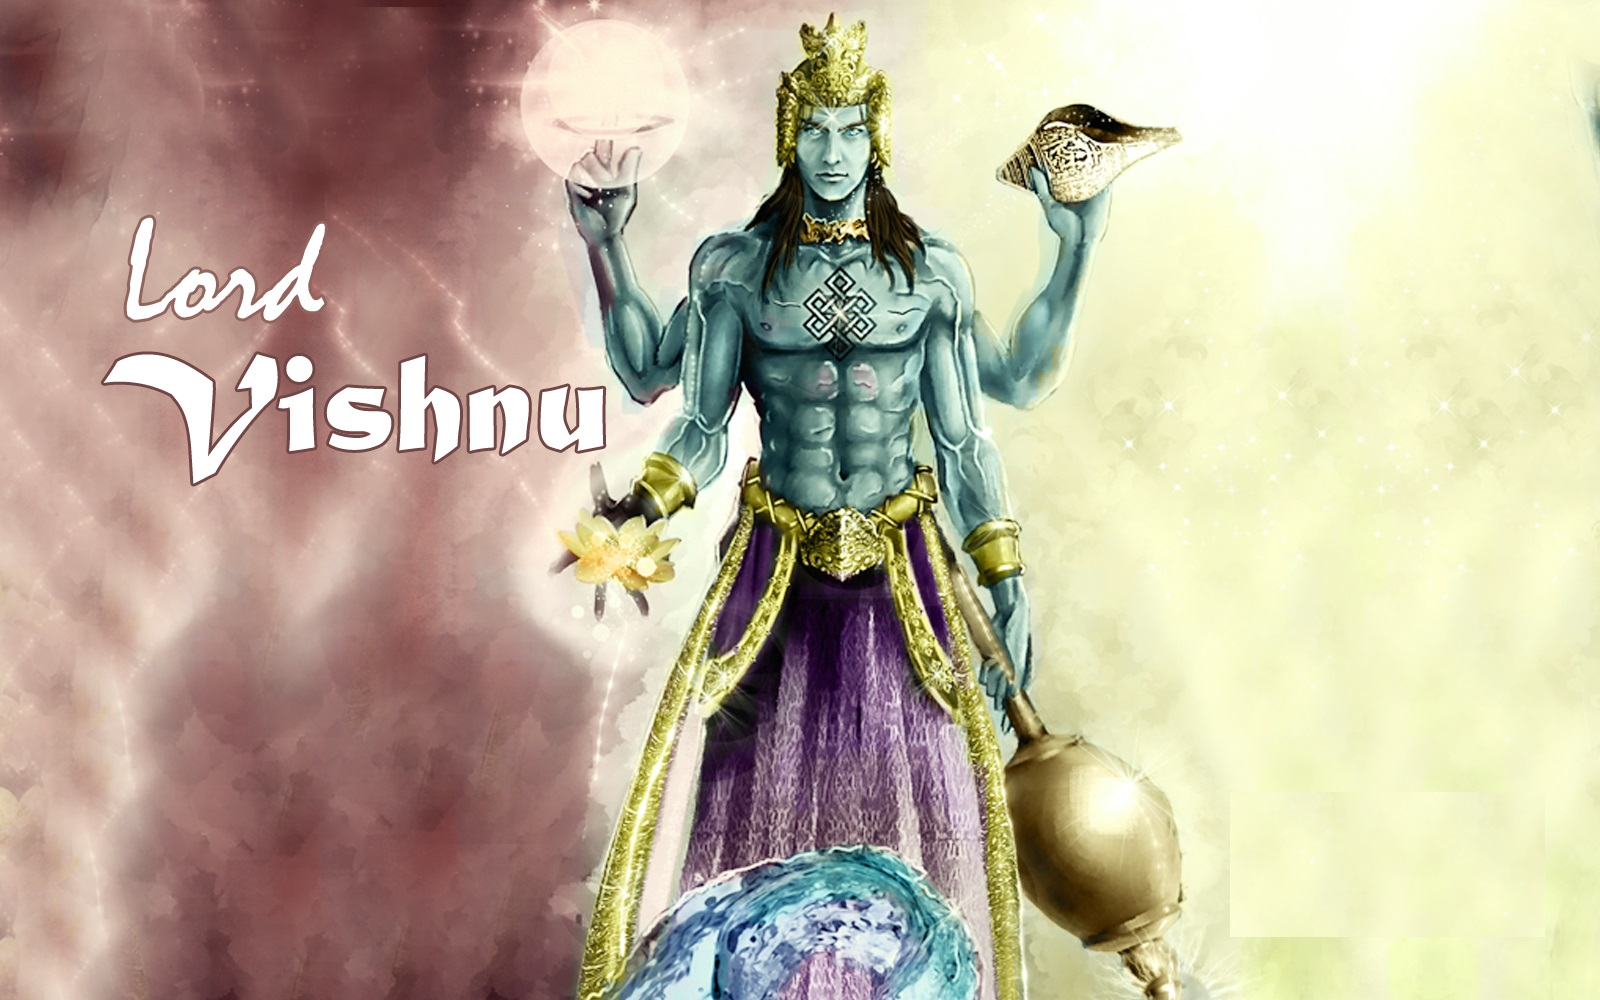 lord_vishnu_animated_image